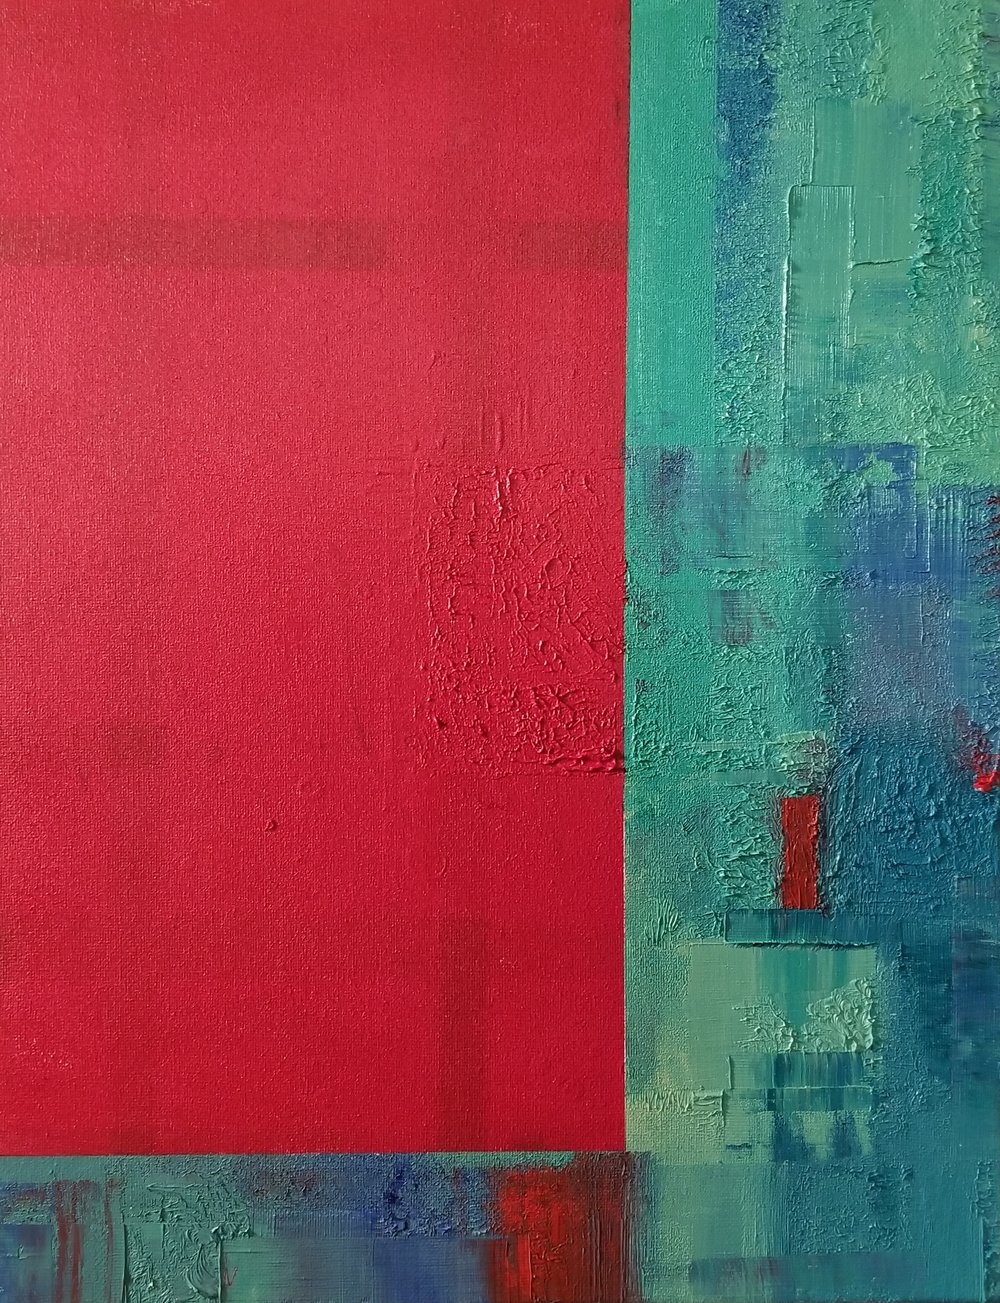 Red Box on Teal Untitled 2018